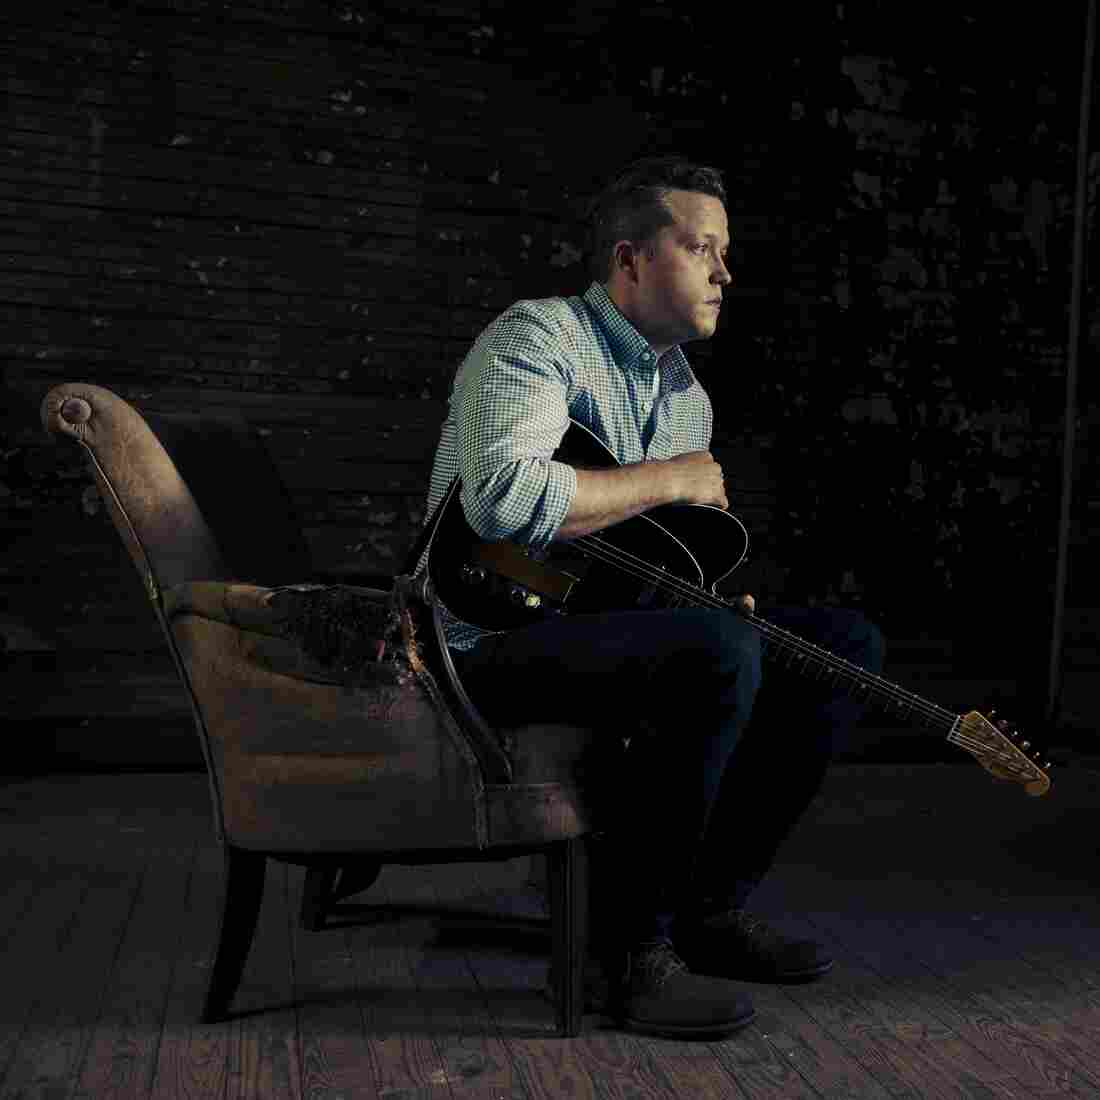 Jason Isbell's new album, Something More Than Free, comes out July 17.